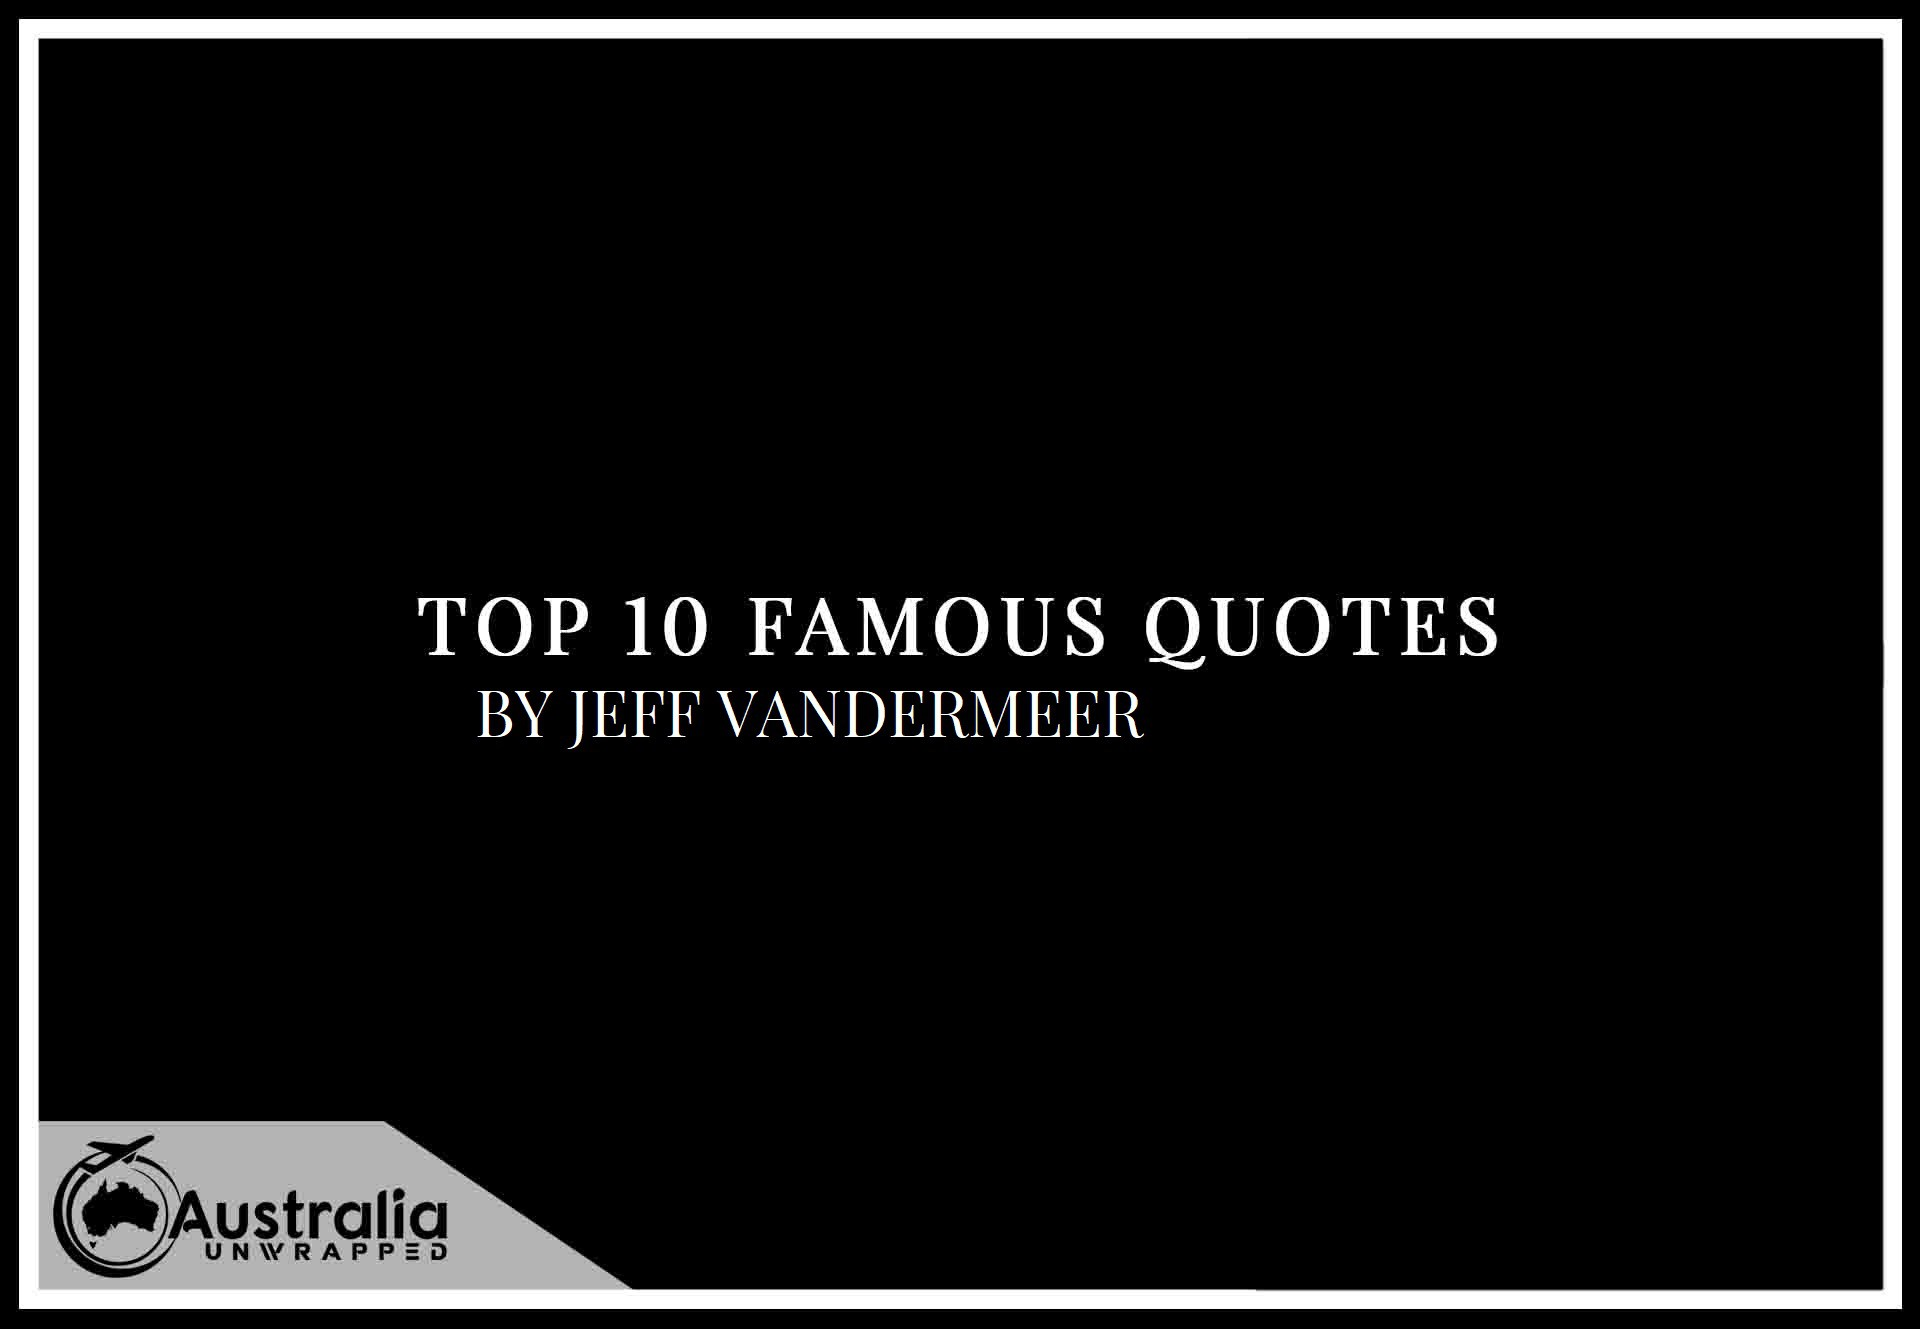 Top 10 Famous Quotes by Author Jeff VanderMeer